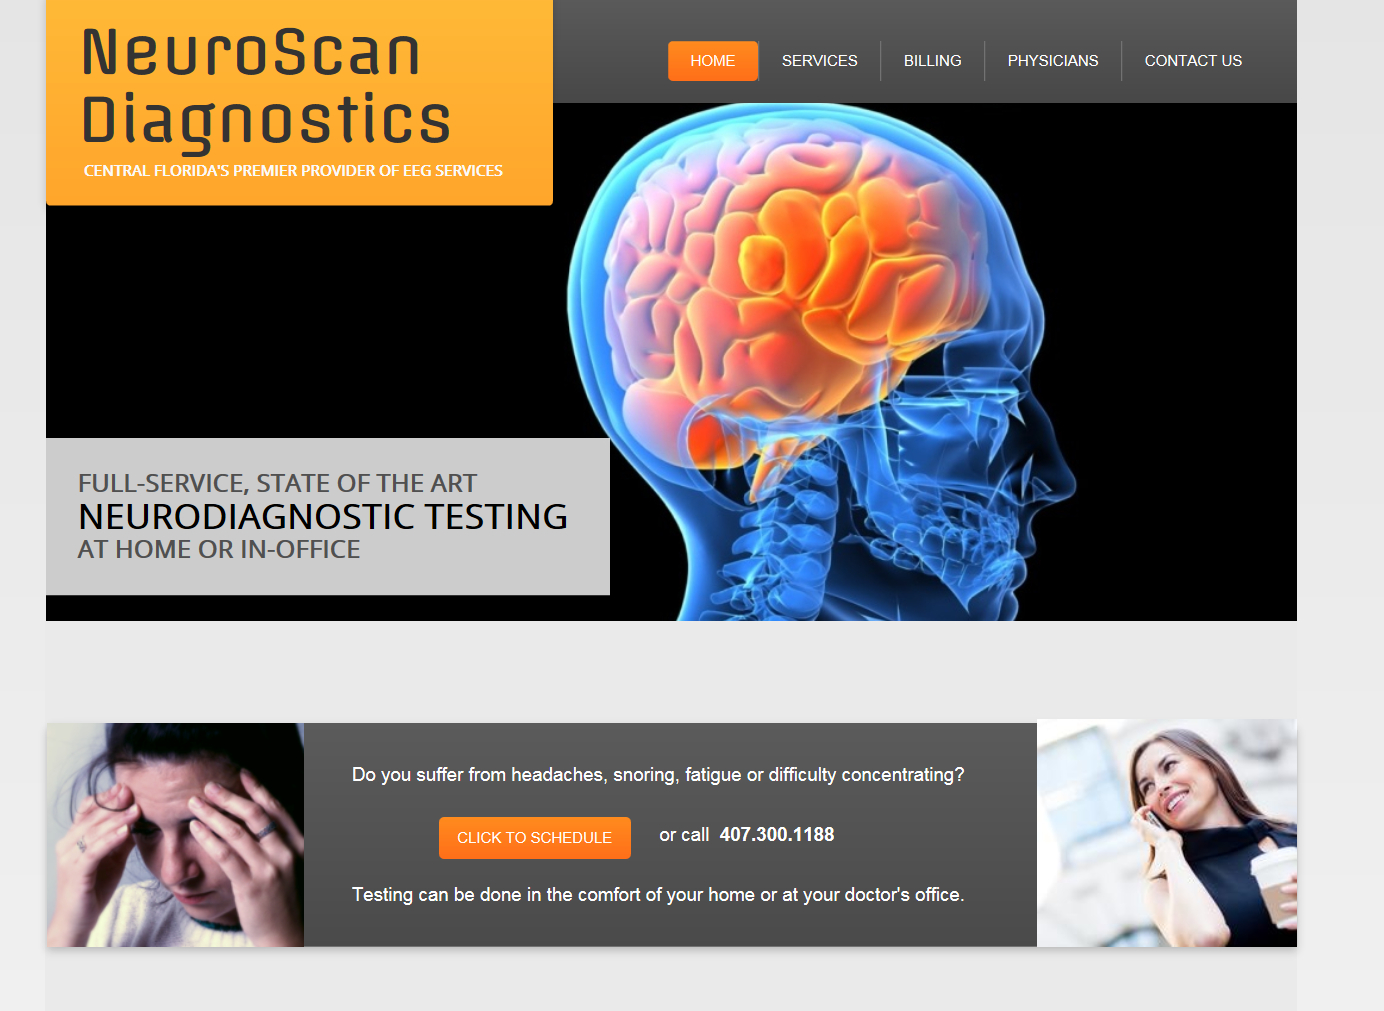 NeuroScan Diagnostics